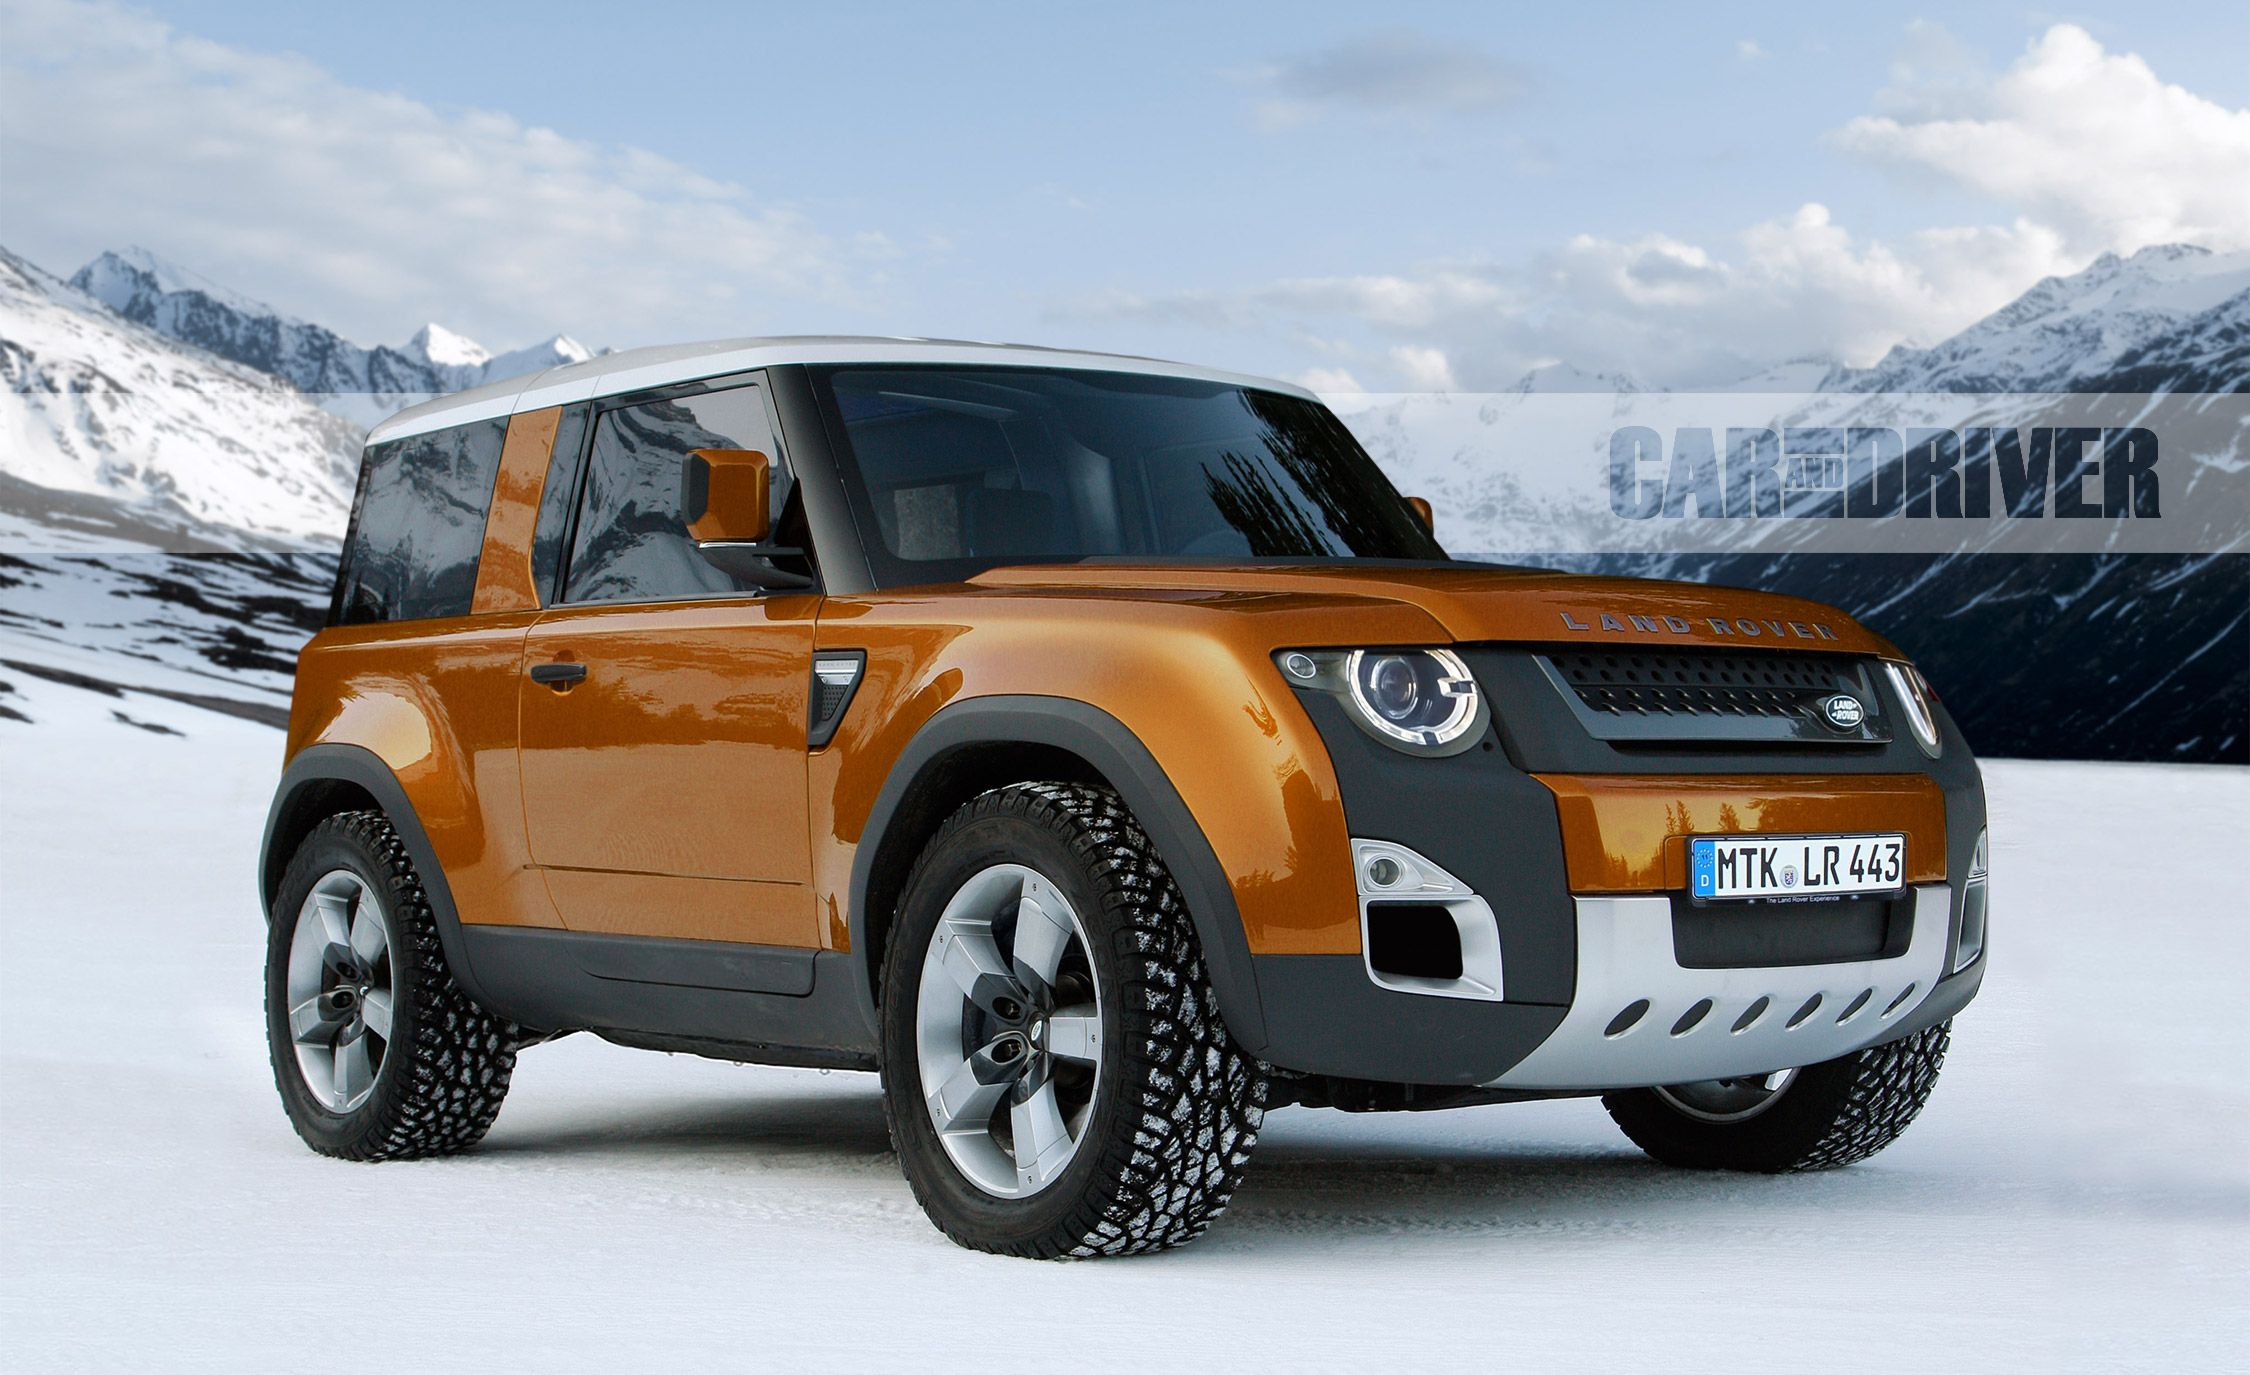 2020 Land Rover Defender Mixing Tradition With Modernity 25 Cars